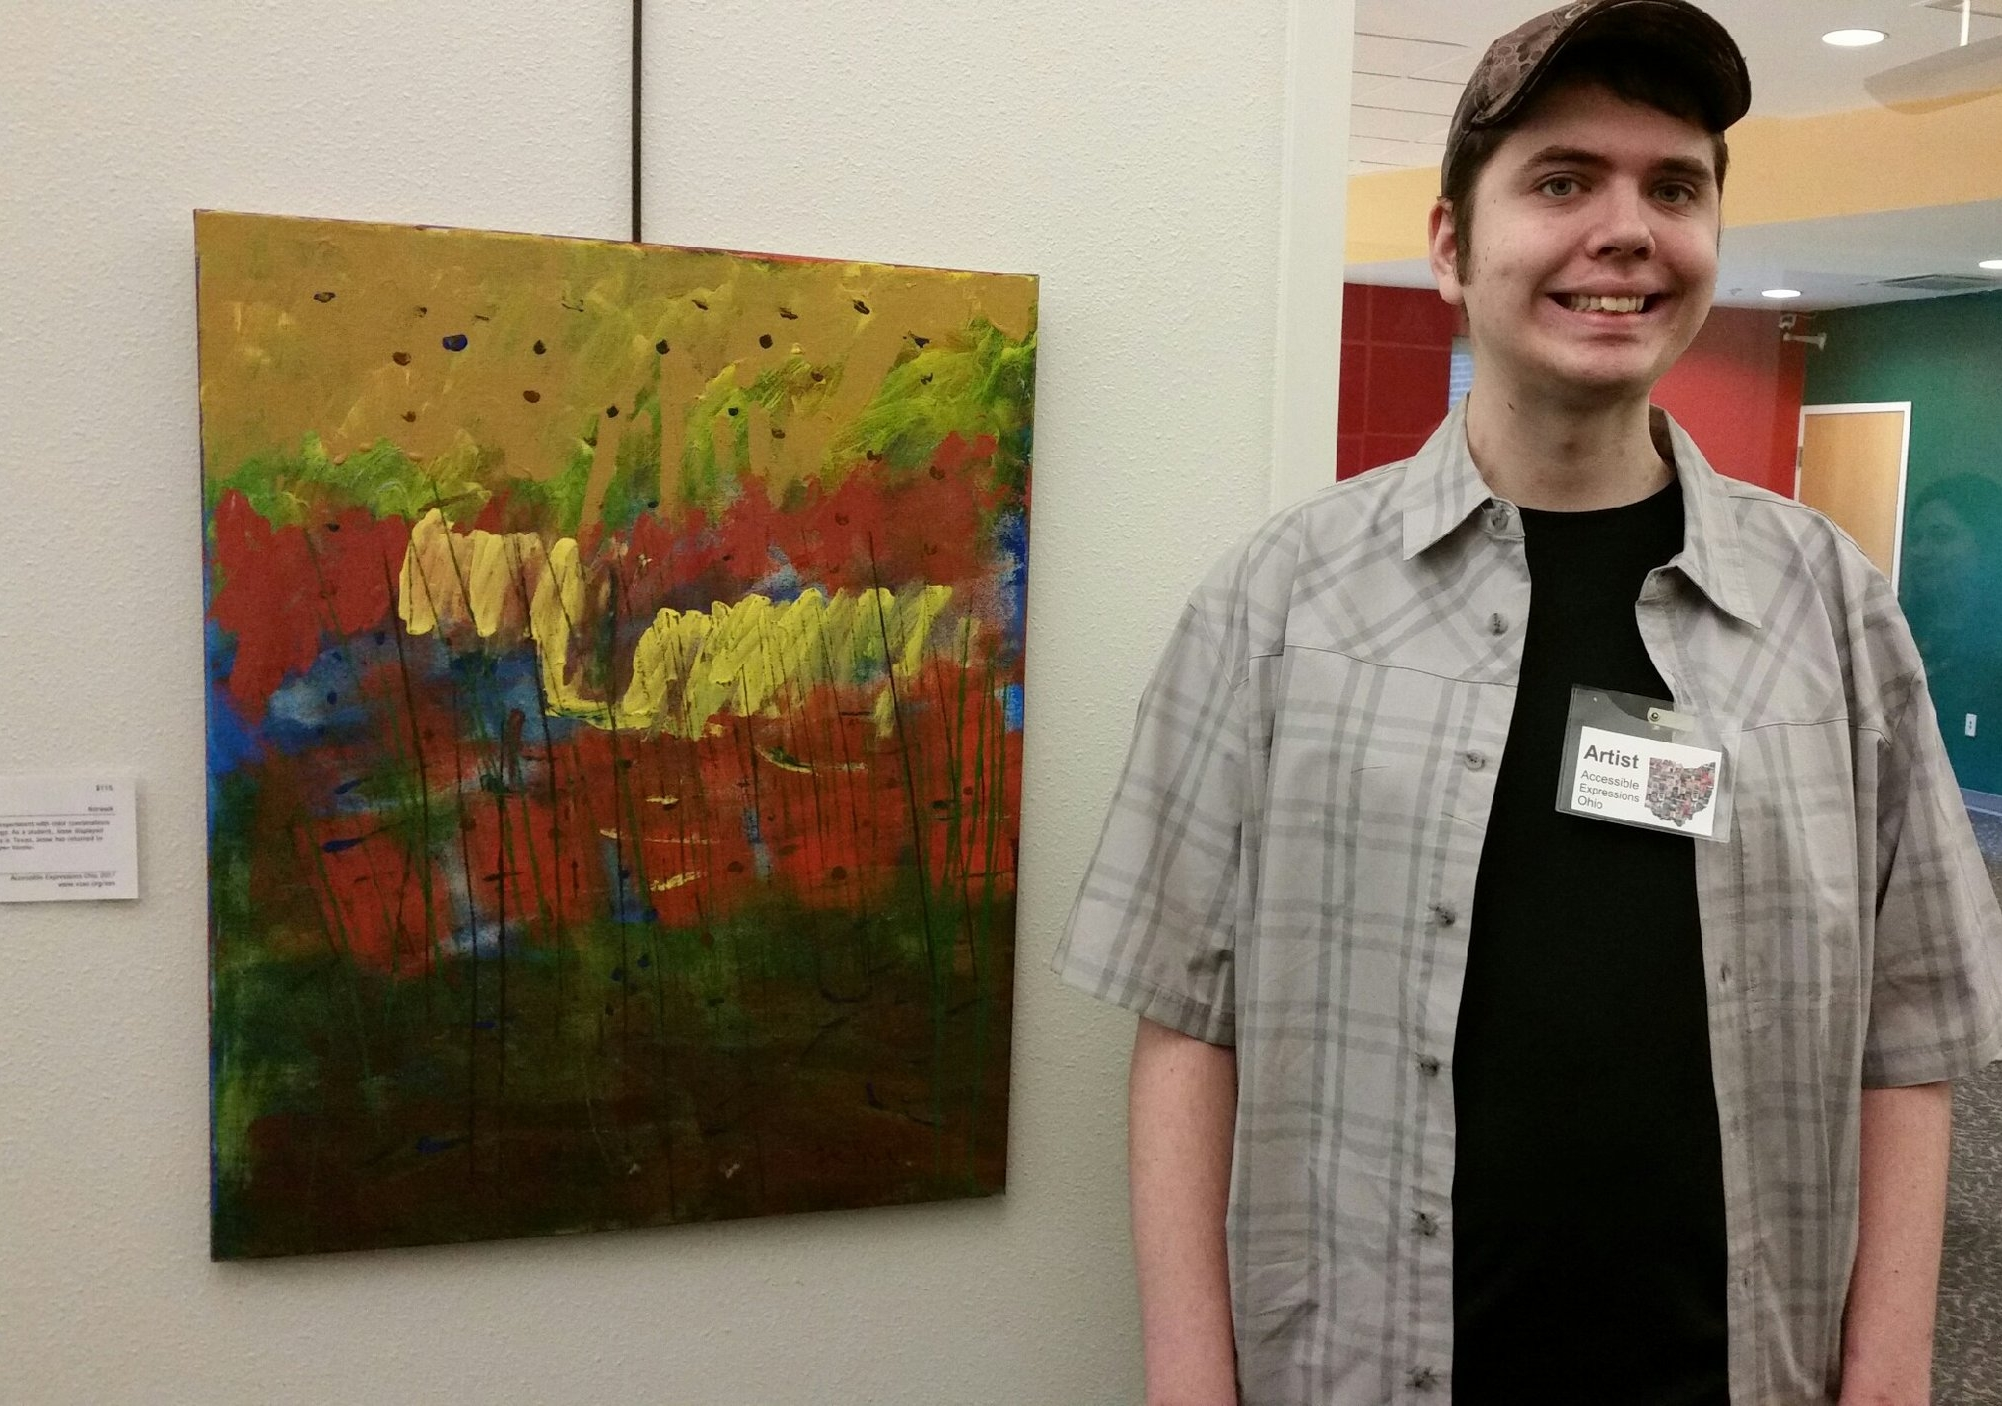 Artist Jesse Fields giving a brilliant smile next to his acrylic painting. Proud moment for friends and family at the art show!